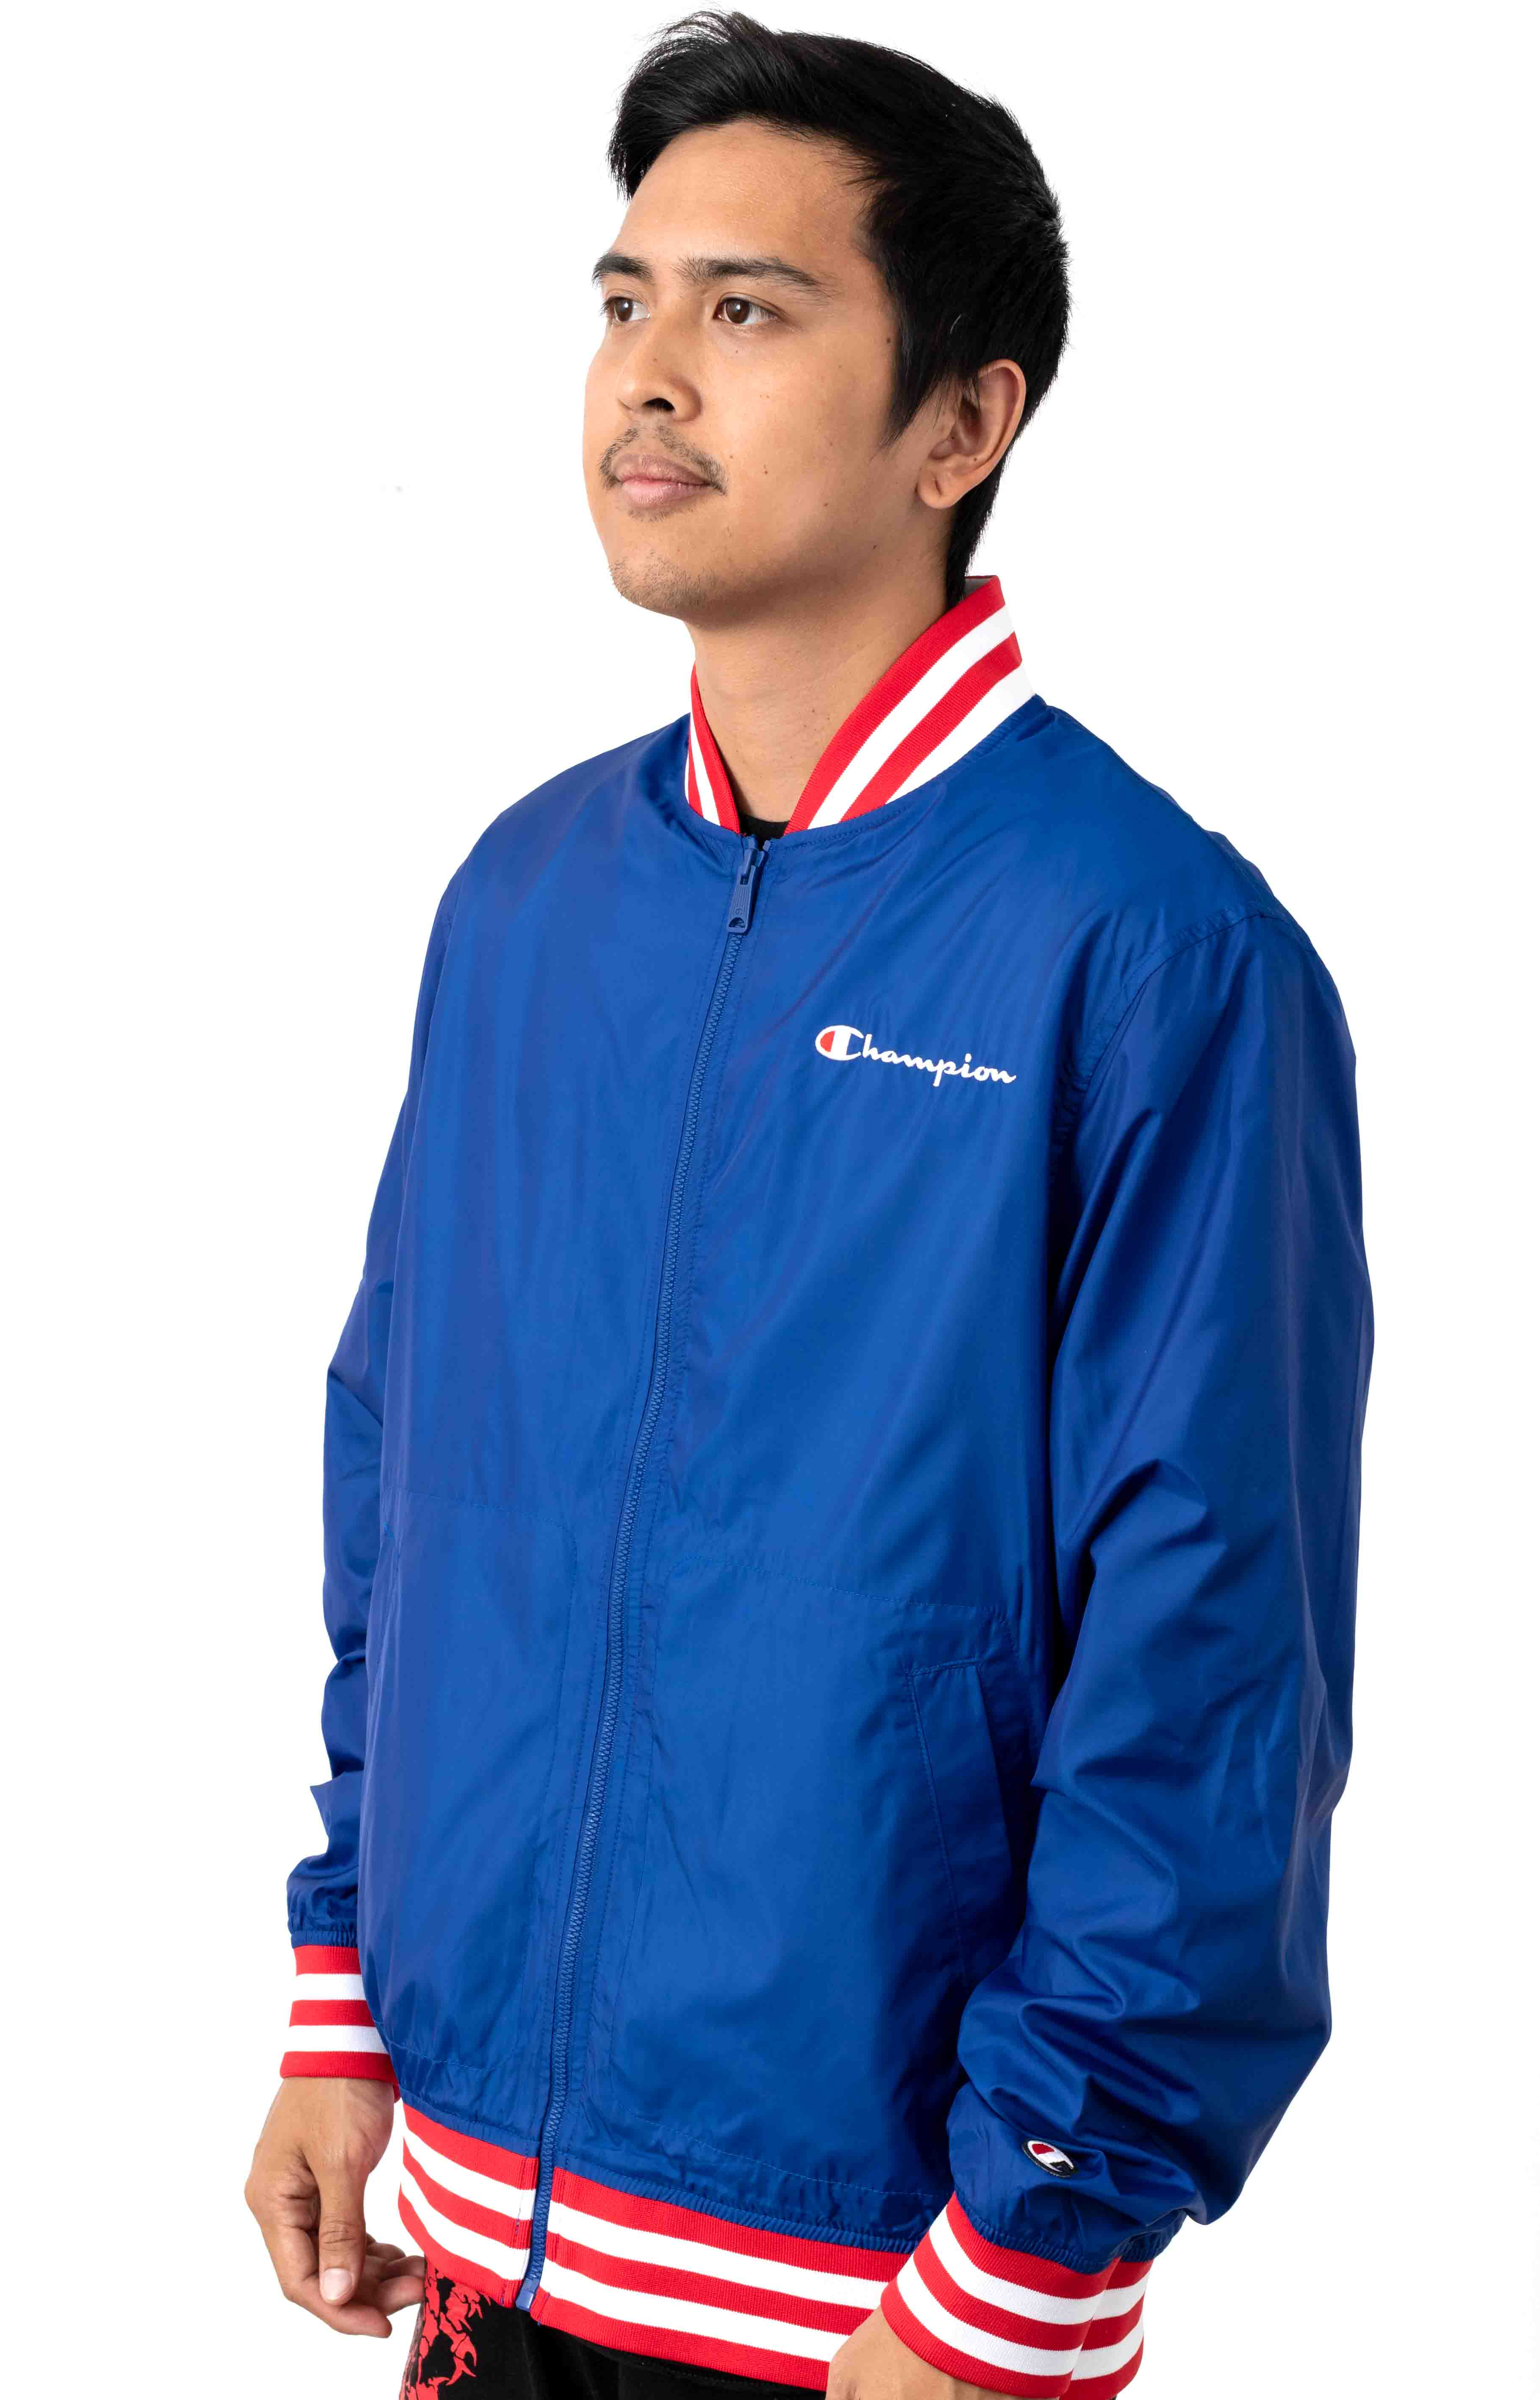 Satin Champion Embroidered Script Baseball Jacket - Surf The Web/Scarlet 2